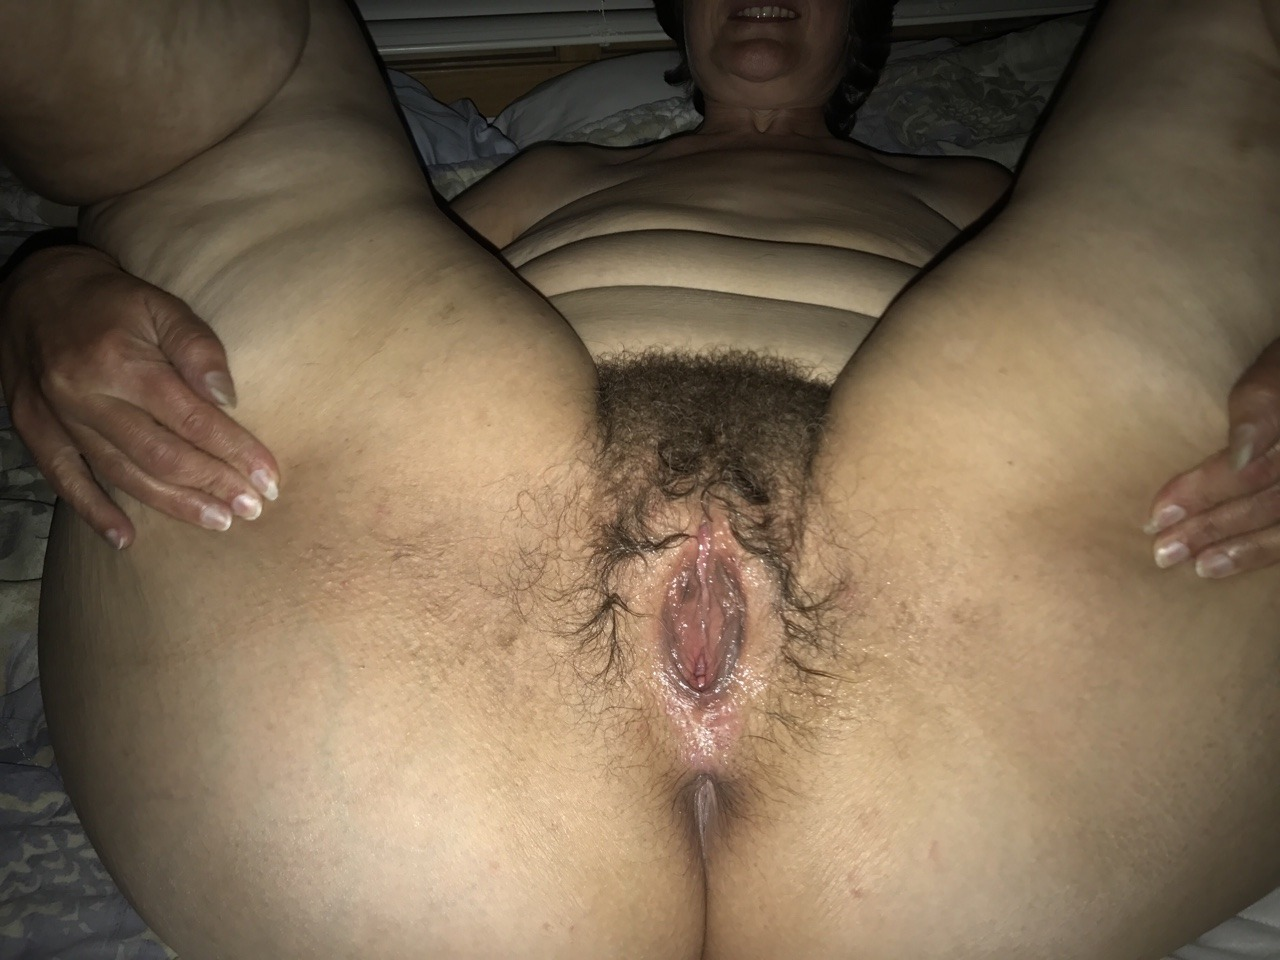 Chubby hairy pussy pissing